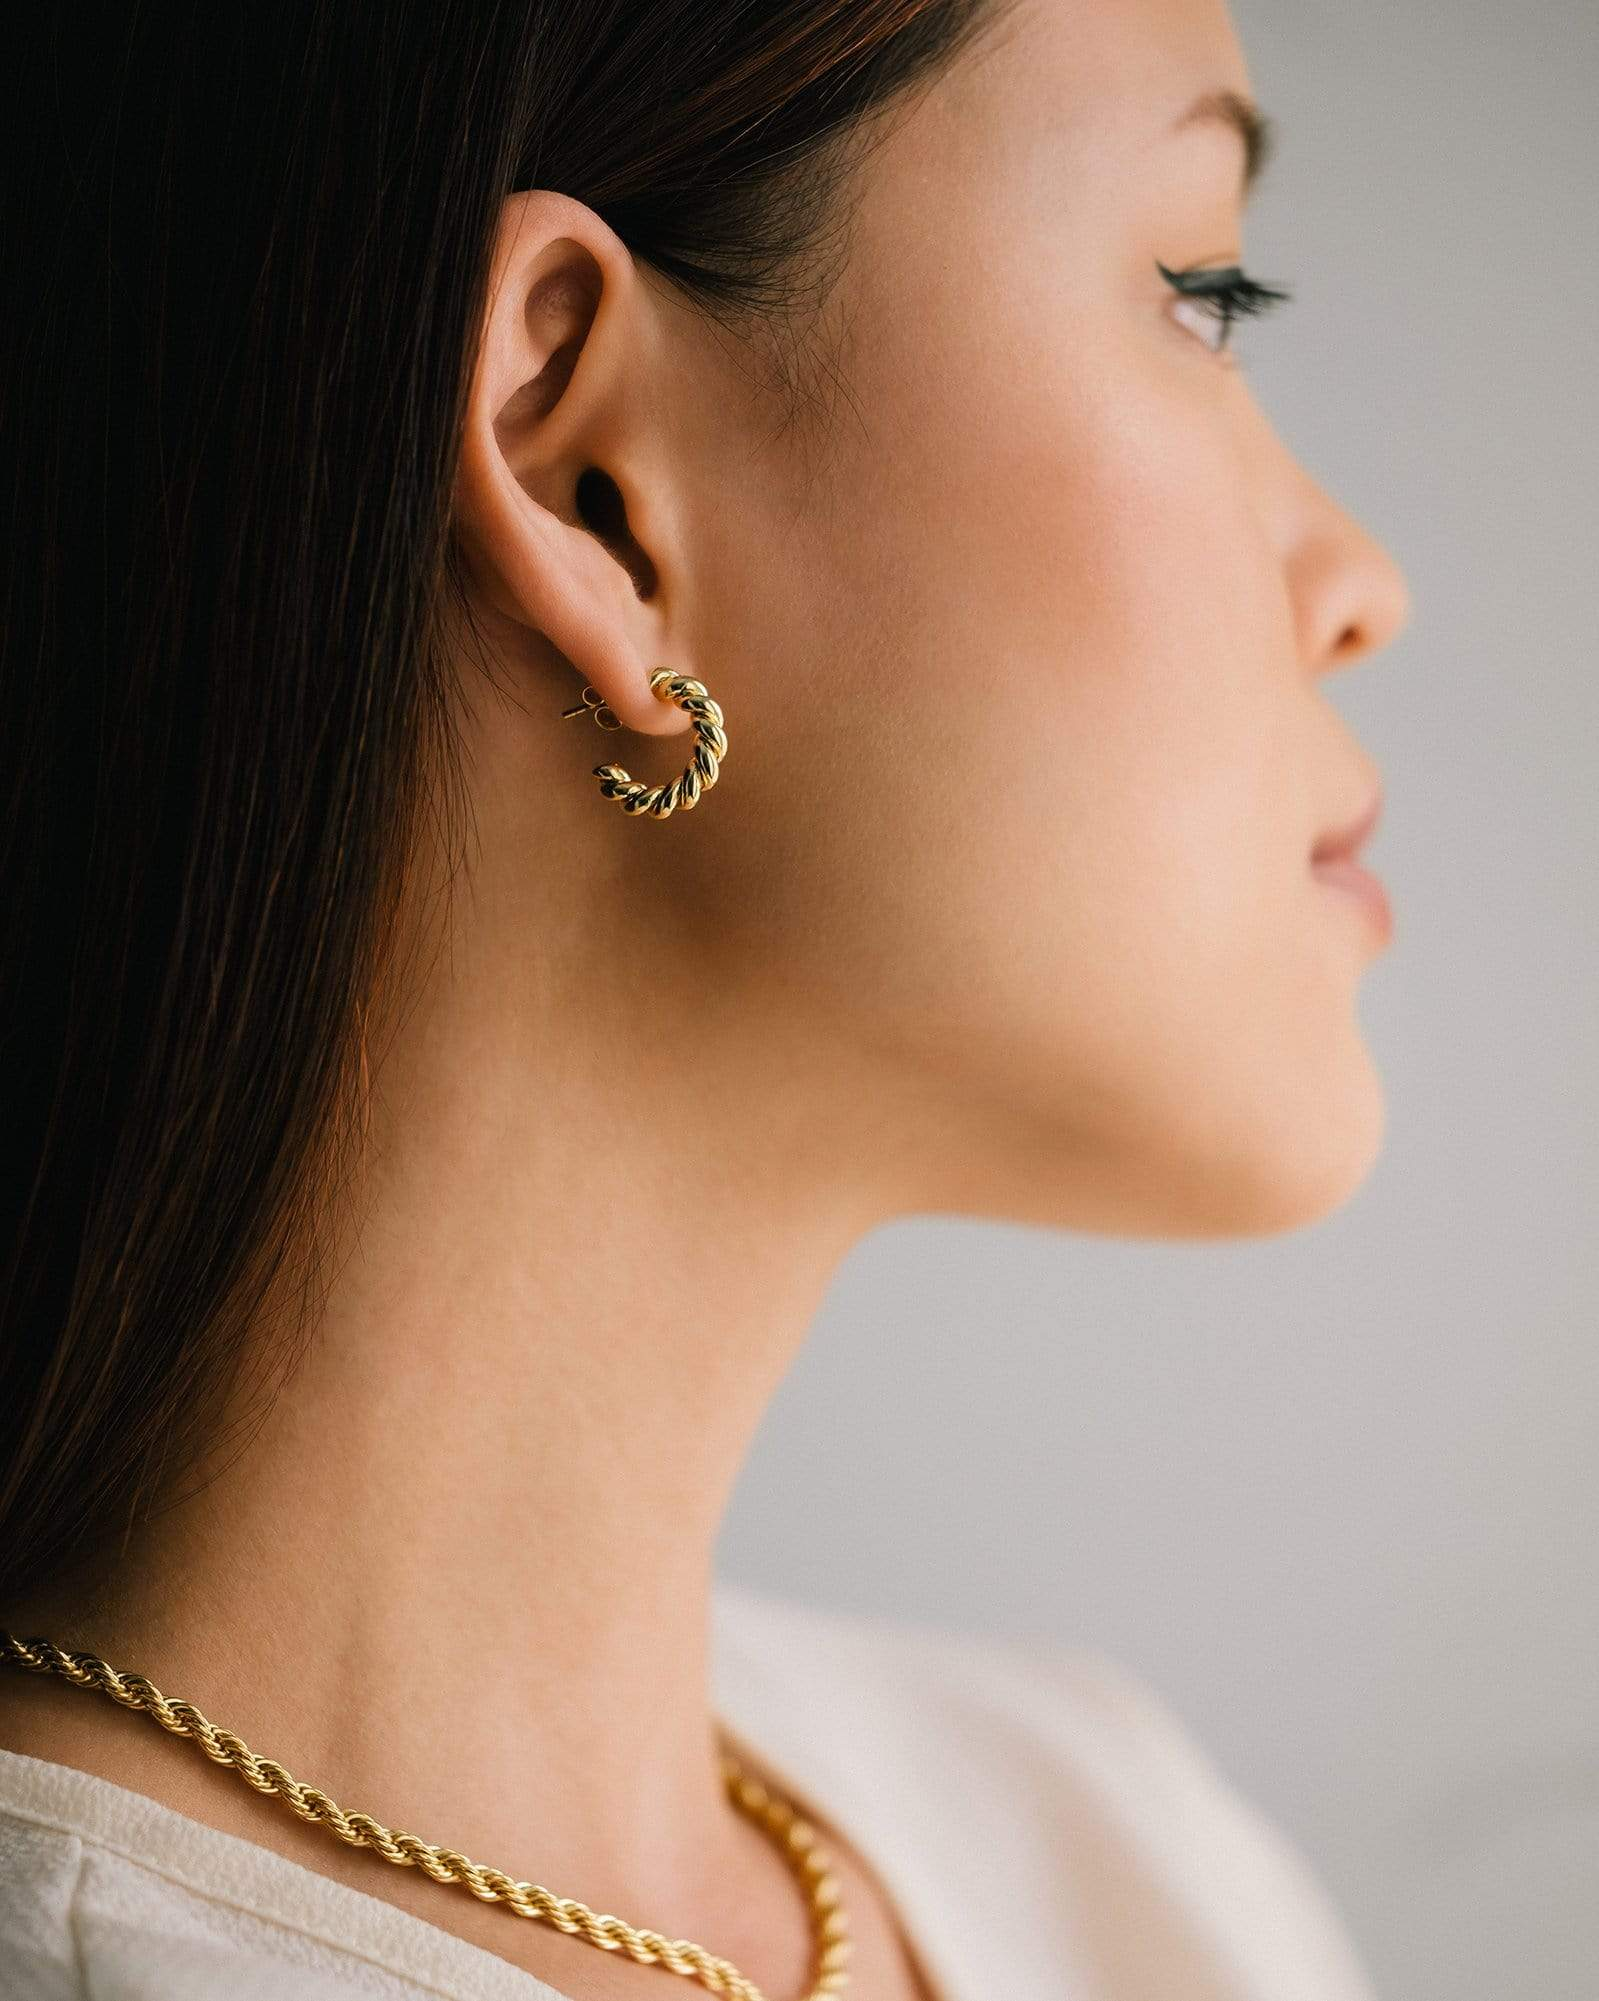 LOVER'S TEMPO - DAWSON HOOP EARRINGS IN GOLD